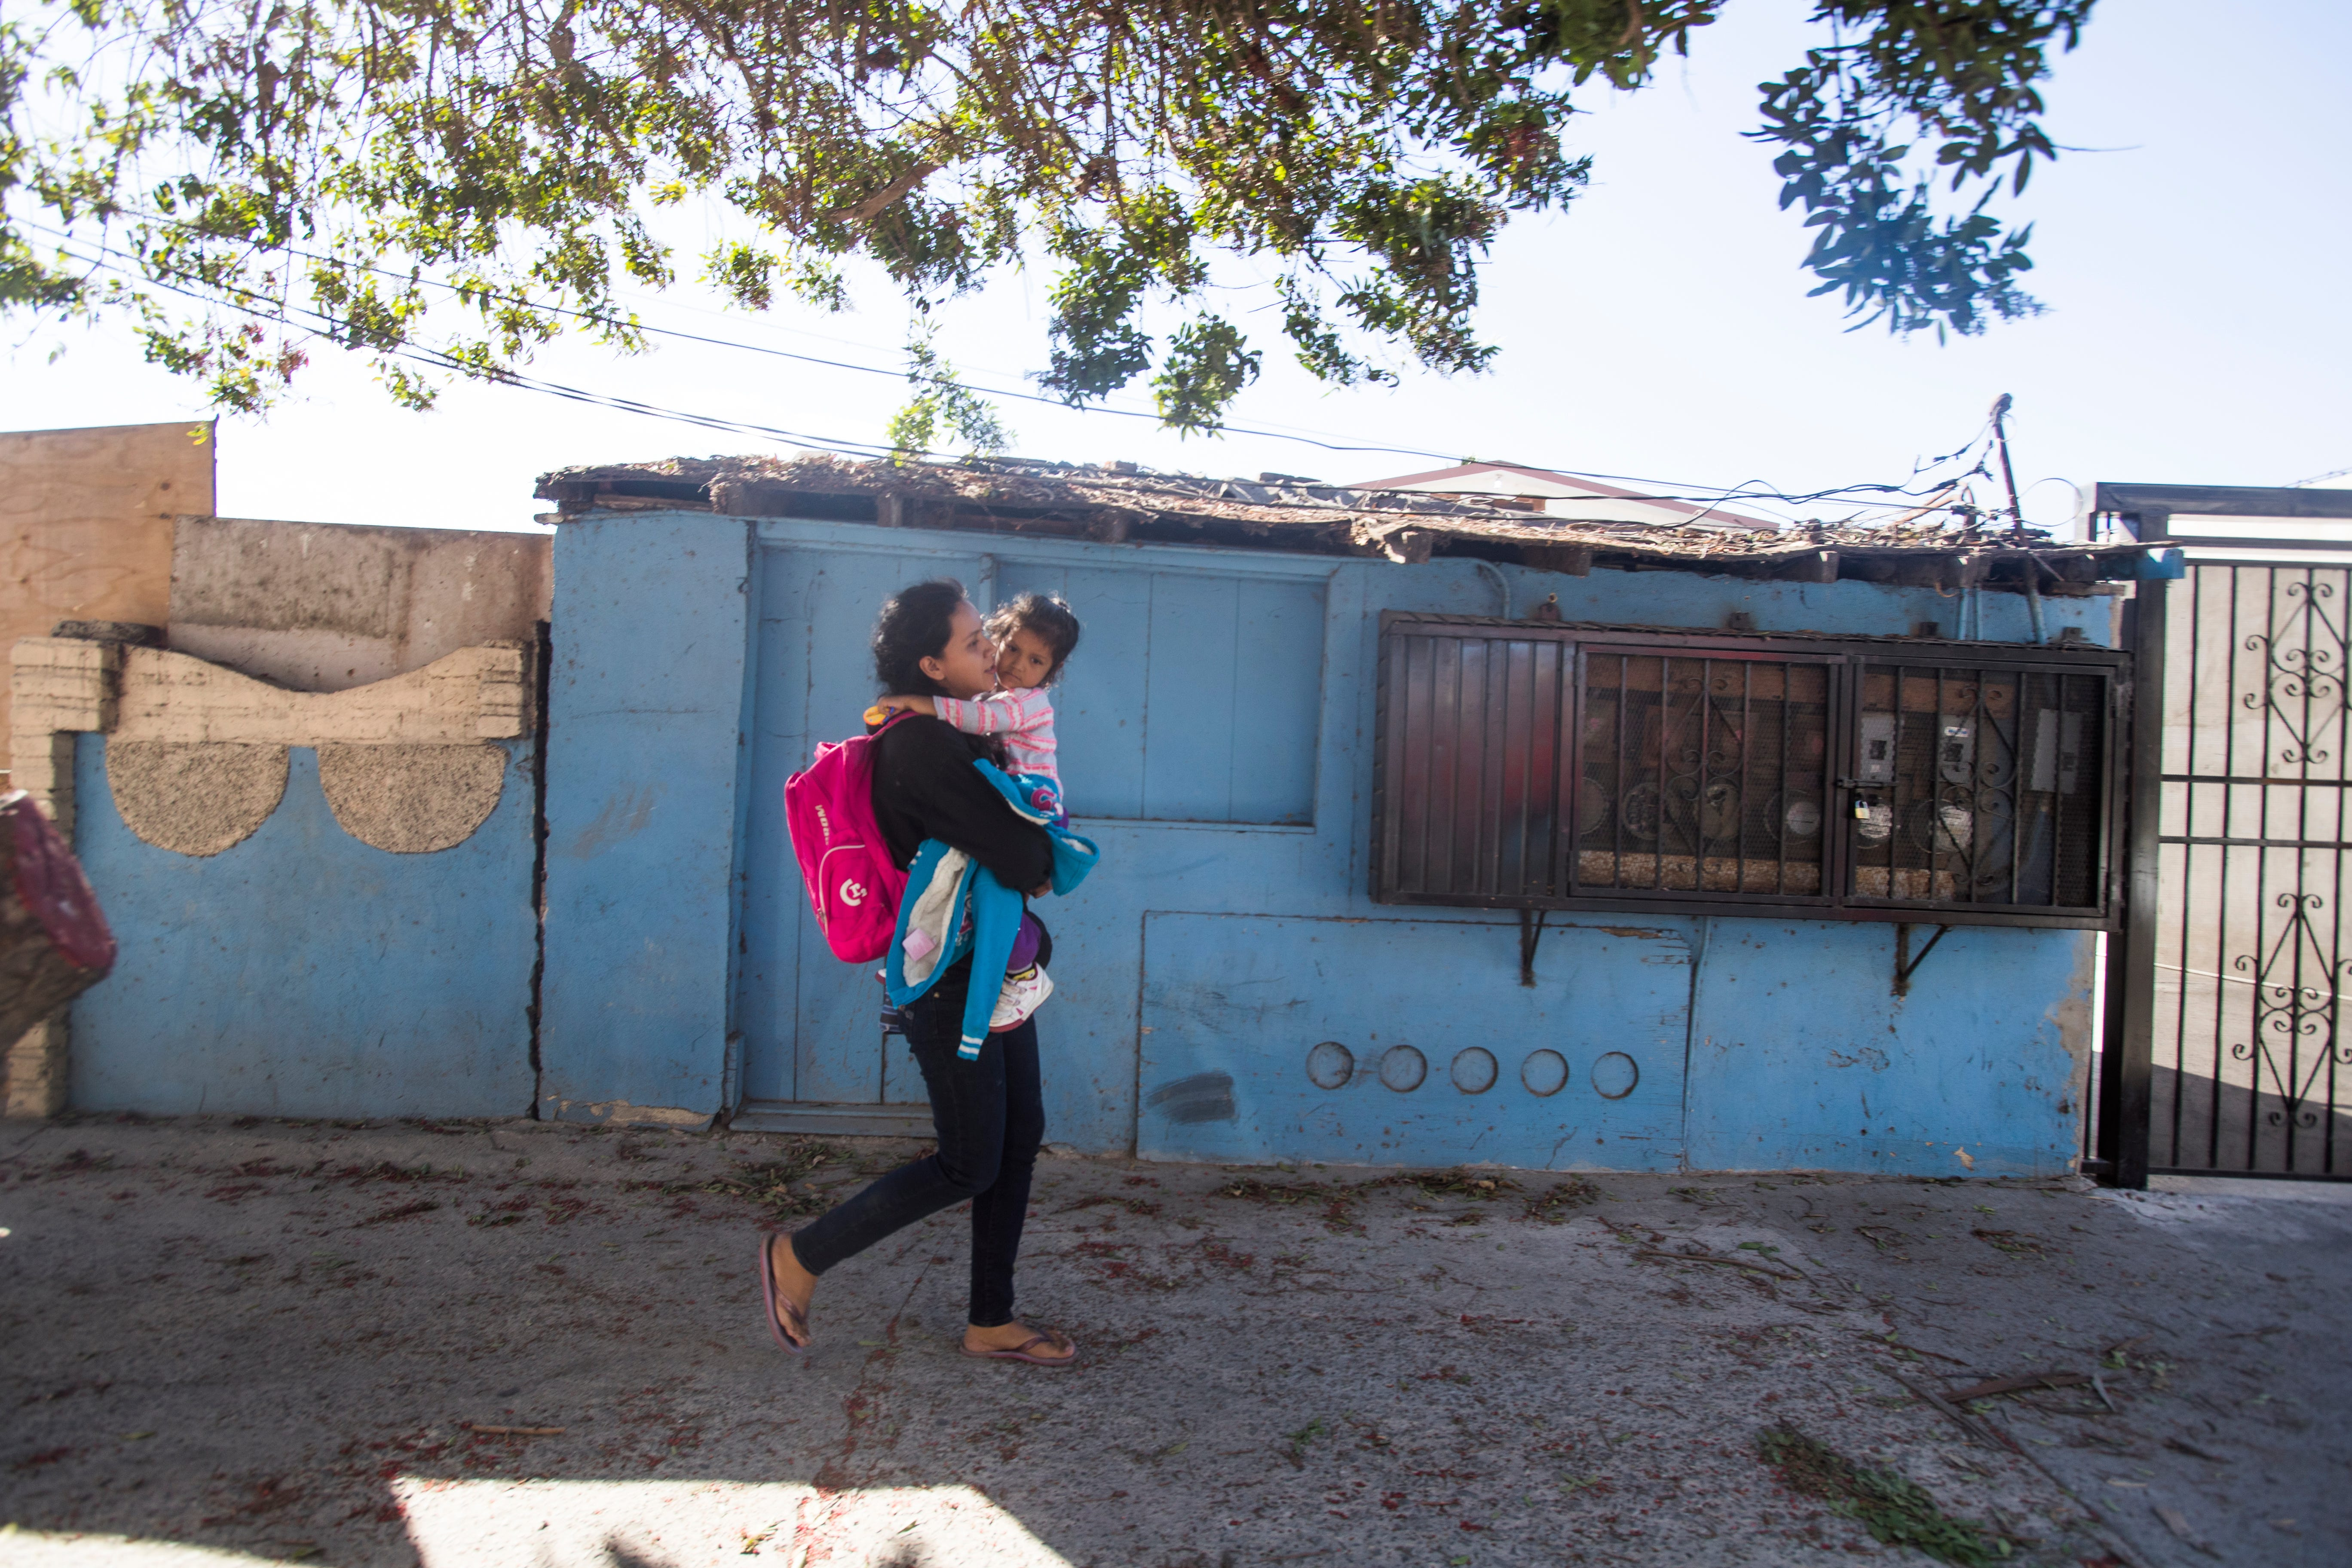 In November 2018, Rosa and her daughter Sofia walked back to the Tijuana migrant shelter after learning it wasn't yet their turn to meet a U.S. Customs and Border Protection officer.